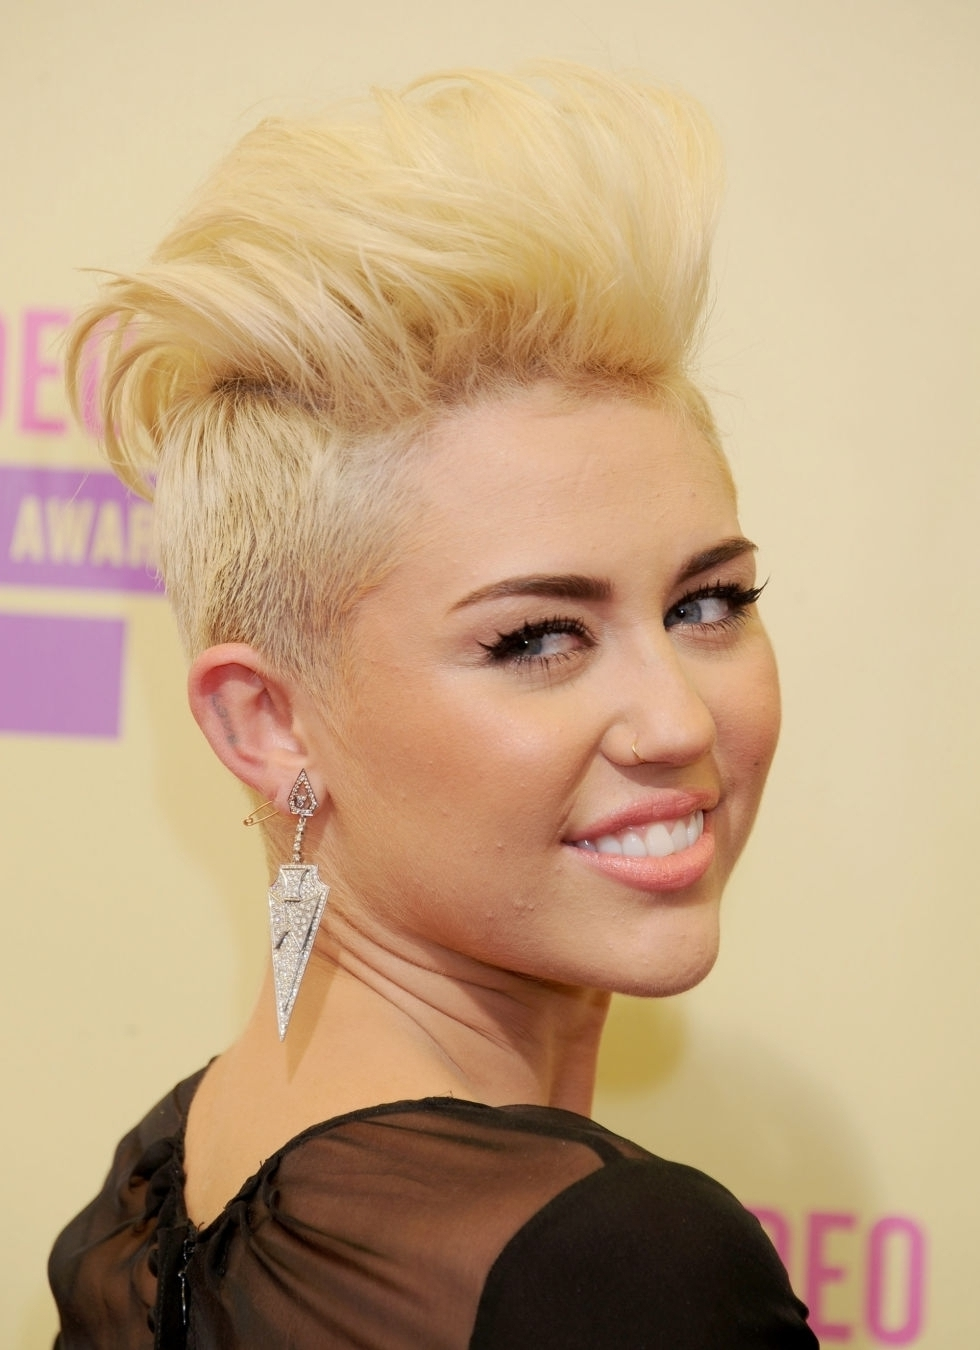 Pixie Haircut Miley Cyrus Pixie Cut Hairstyle Ideas Iconic Pixie Cuts For Latest Miley Cyrus Pixie Hairstyles (View 9 of 15)